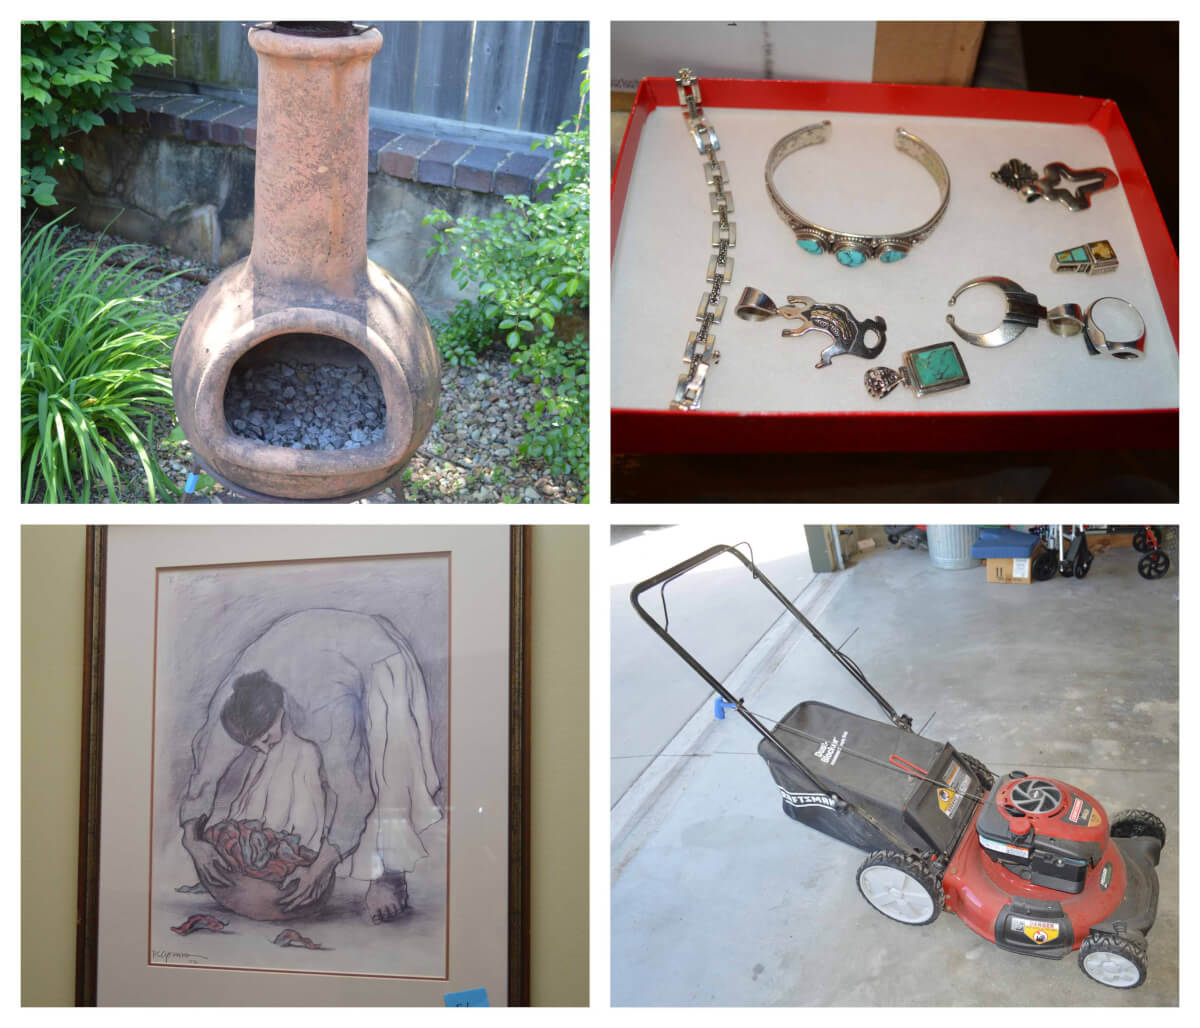 ONLINE ONLY AUCTION: Furniture, Art, Decor, Lawn/Patio Items